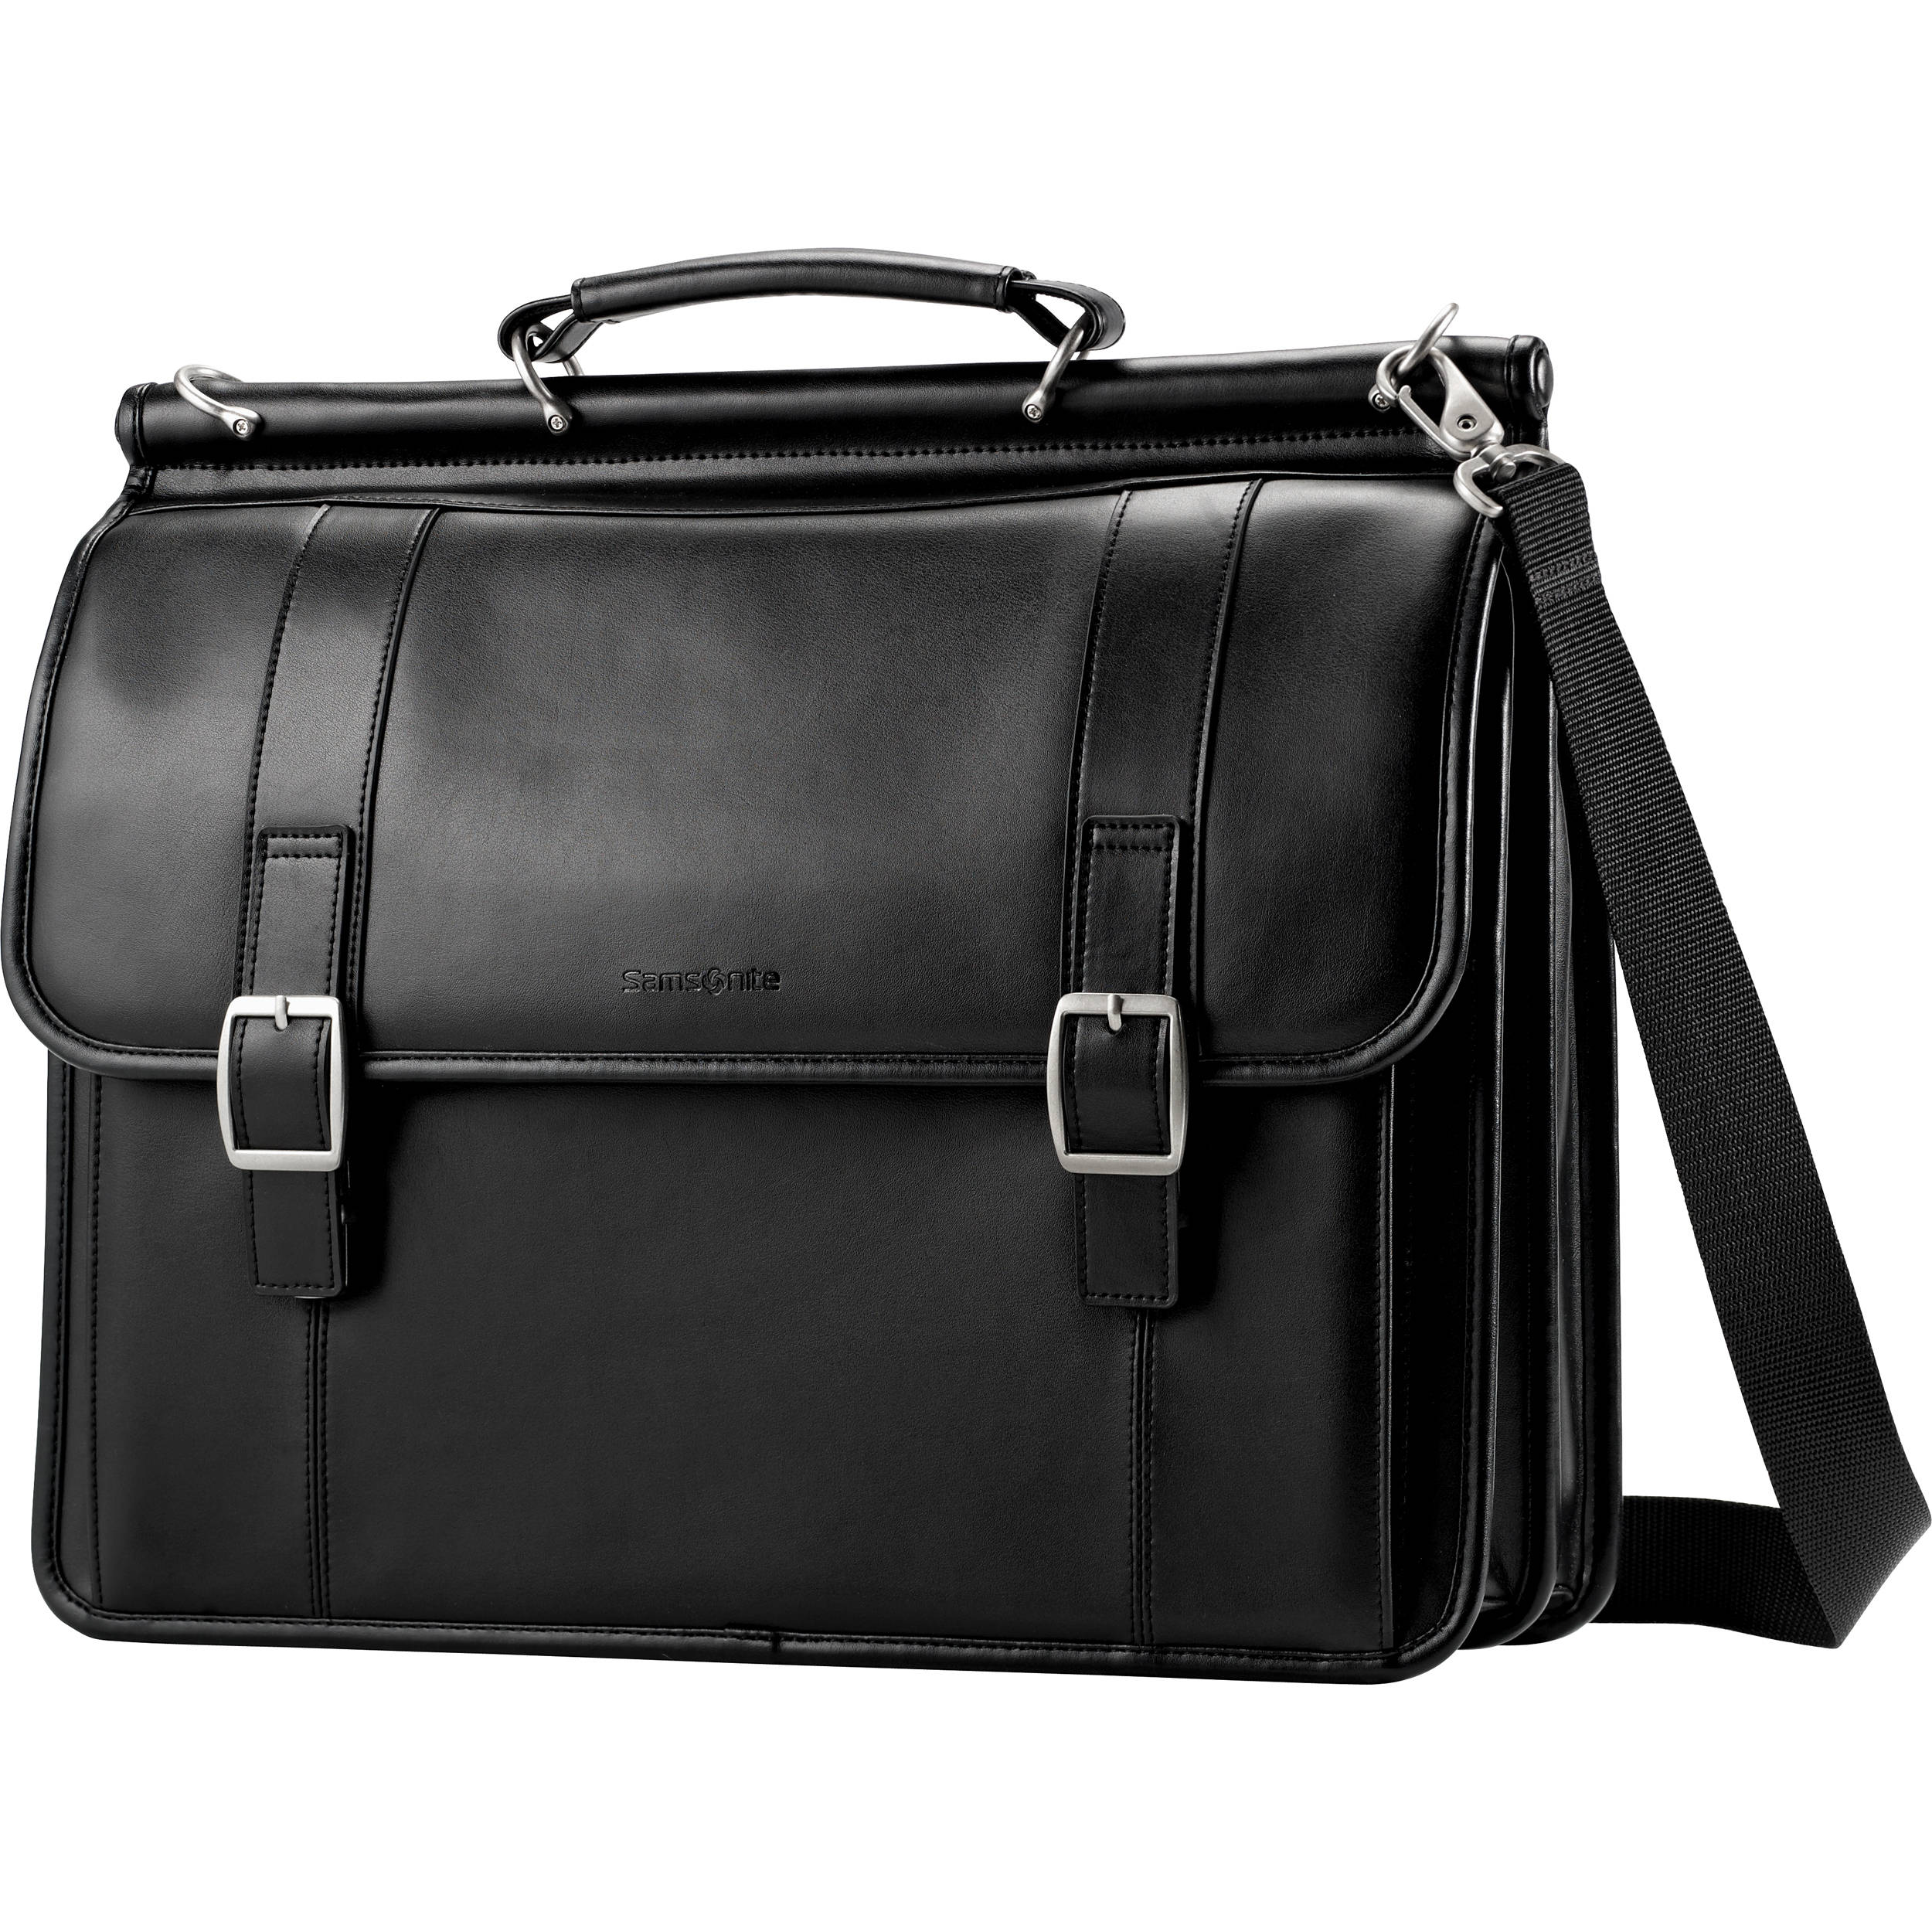 Samsonite Leather Business Cases Flap Over Briefcase in Black